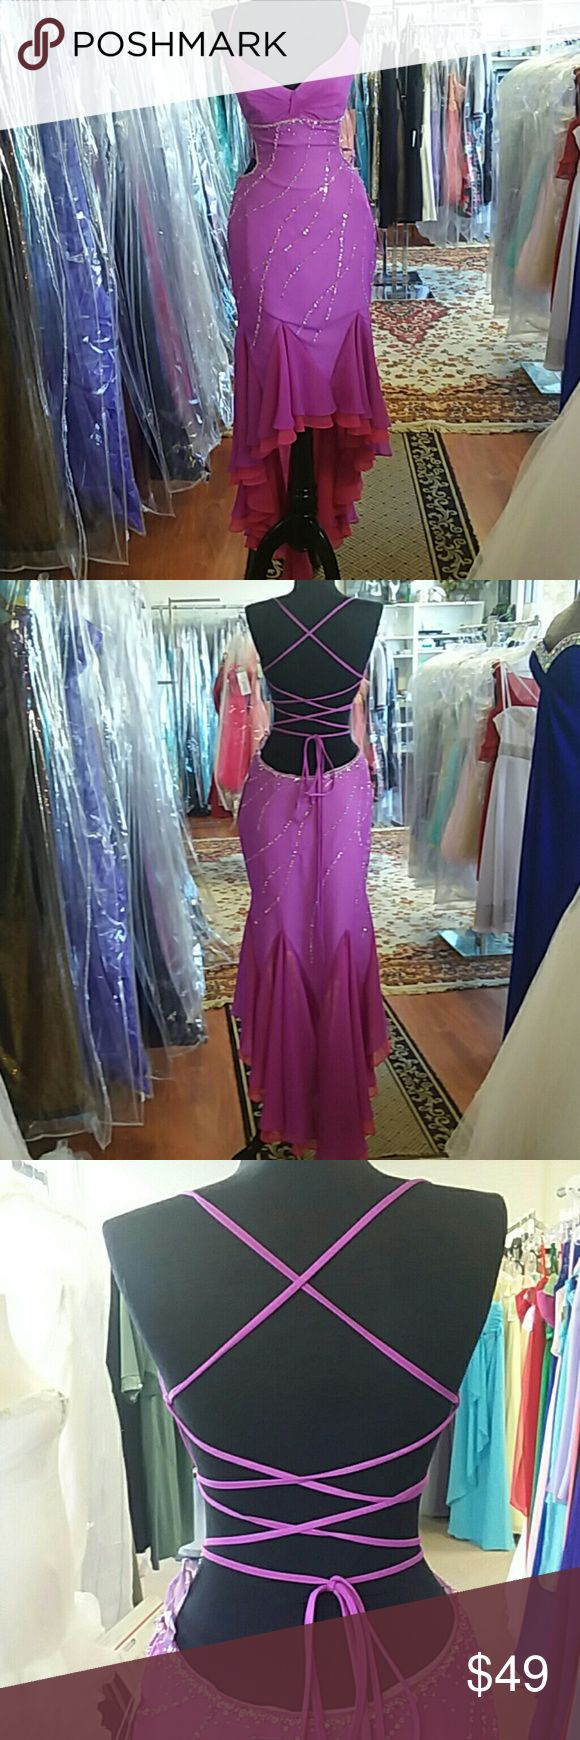 NWT All About Me Prom hi low All About Me Prom 1224 Color: Grape and Raspberry Fabric: Beaded and sequined chiffon  Size 6 Condition: Sample dress from bridal shop. May have been tried on but not worn. No visible pulls, snags, tears. Some missing beads. All About Me Dresses High Low